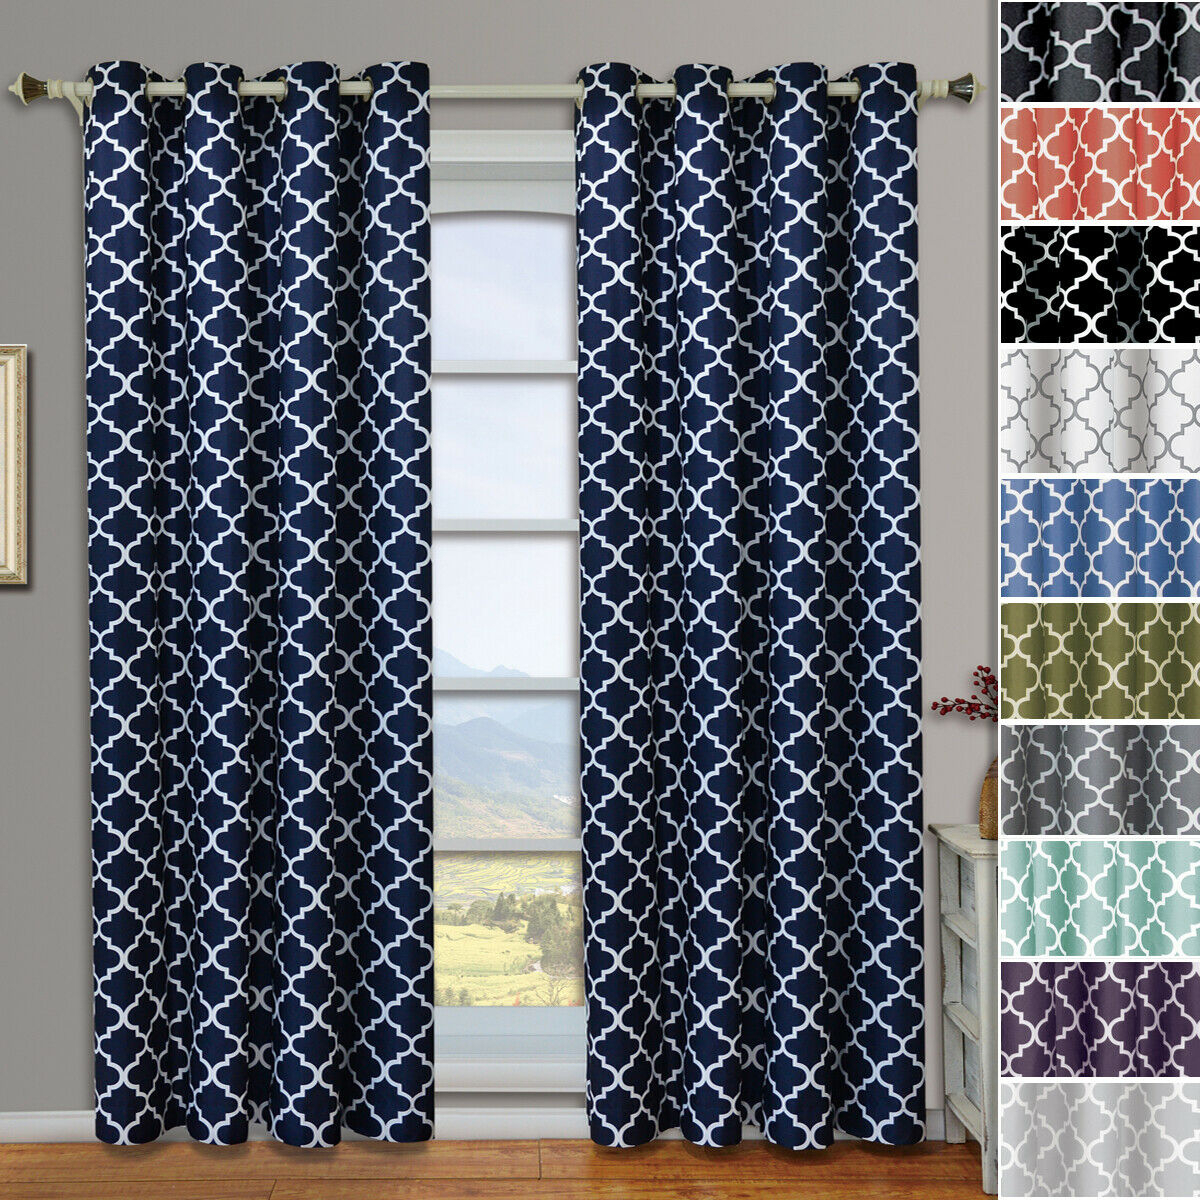 Meridian Thermal Room Darkening Grommet Window Geometric Curtain 2 Panels Set For The Gray Barn Kind Koala Curtain Panel Pairs (View 17 of 30)